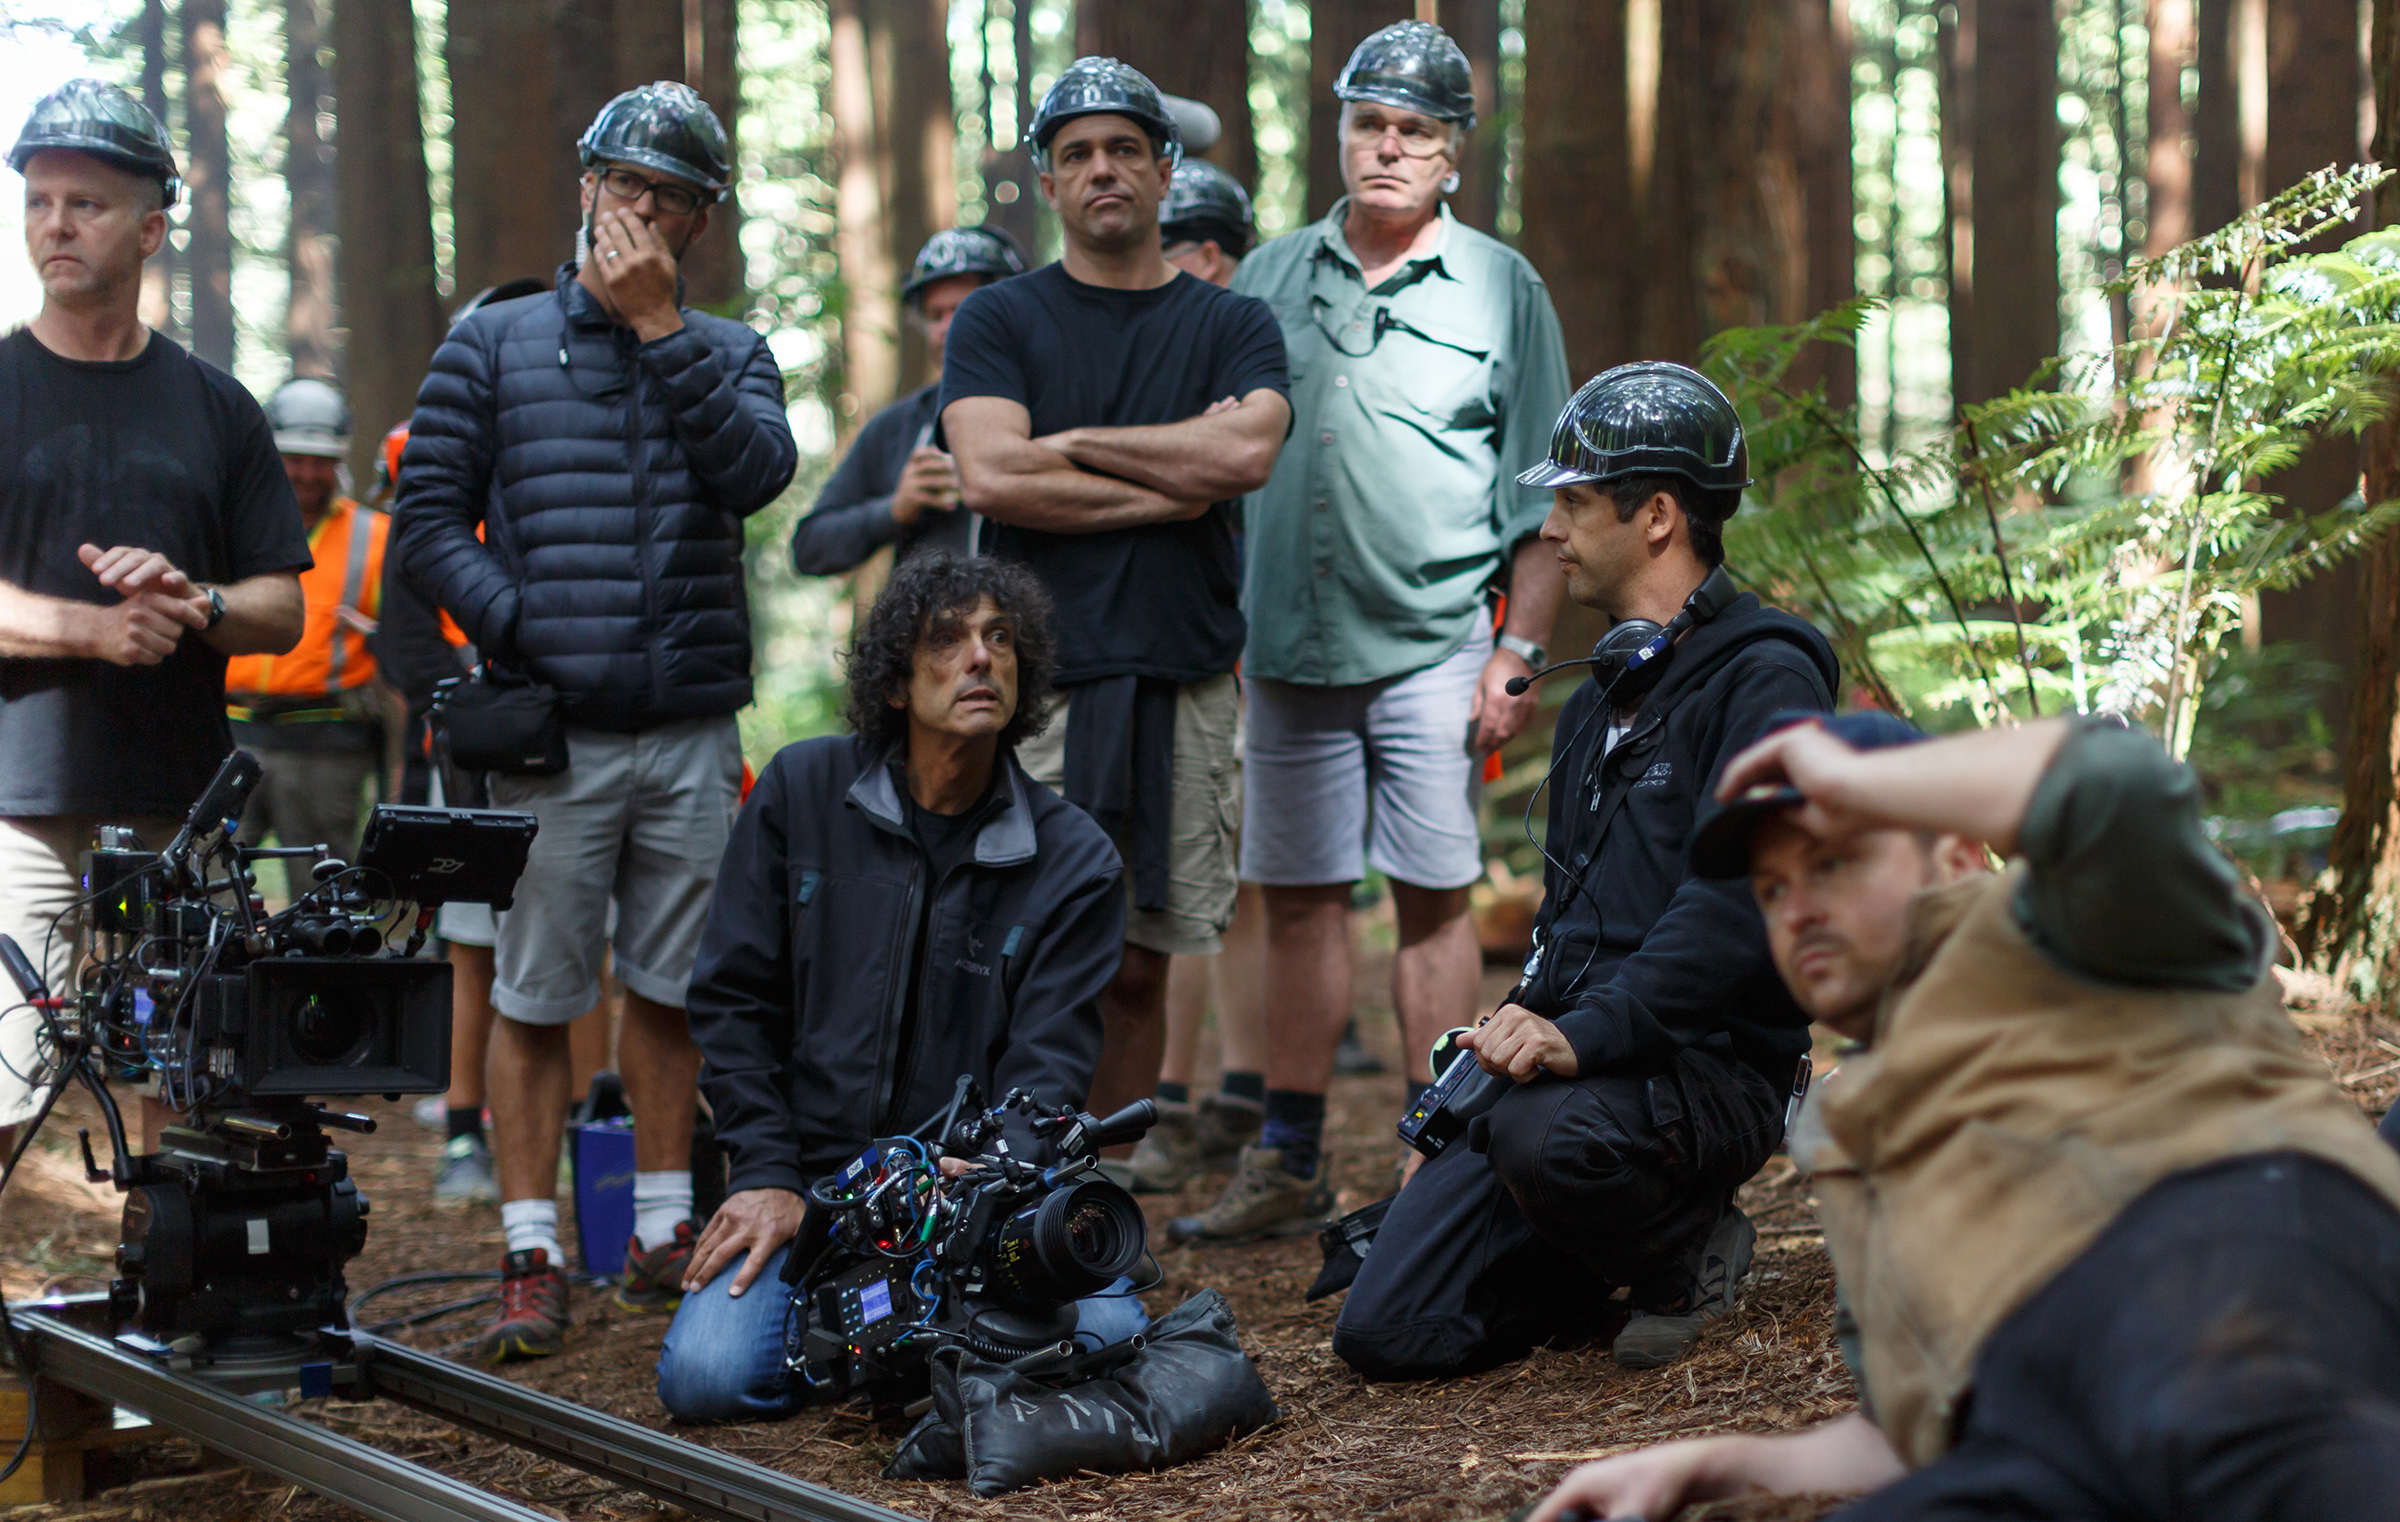 Director David Lowery and cinematographer Bojan Bazelli, ASC (kneeling) on the set of Disney's Pete's Dragon.